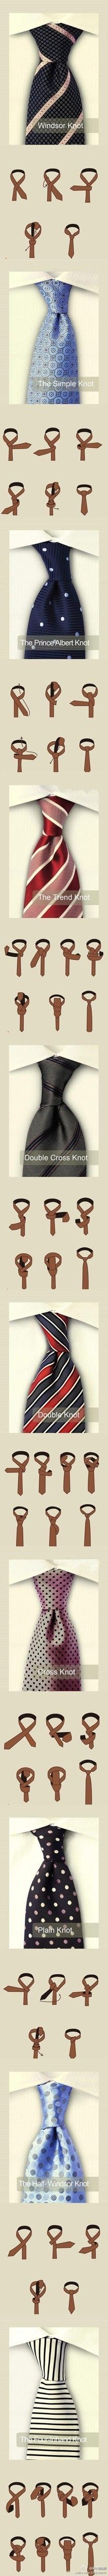 Good simpe tie knots. Except is it me or do the end result images kinda all look the same?!? :)